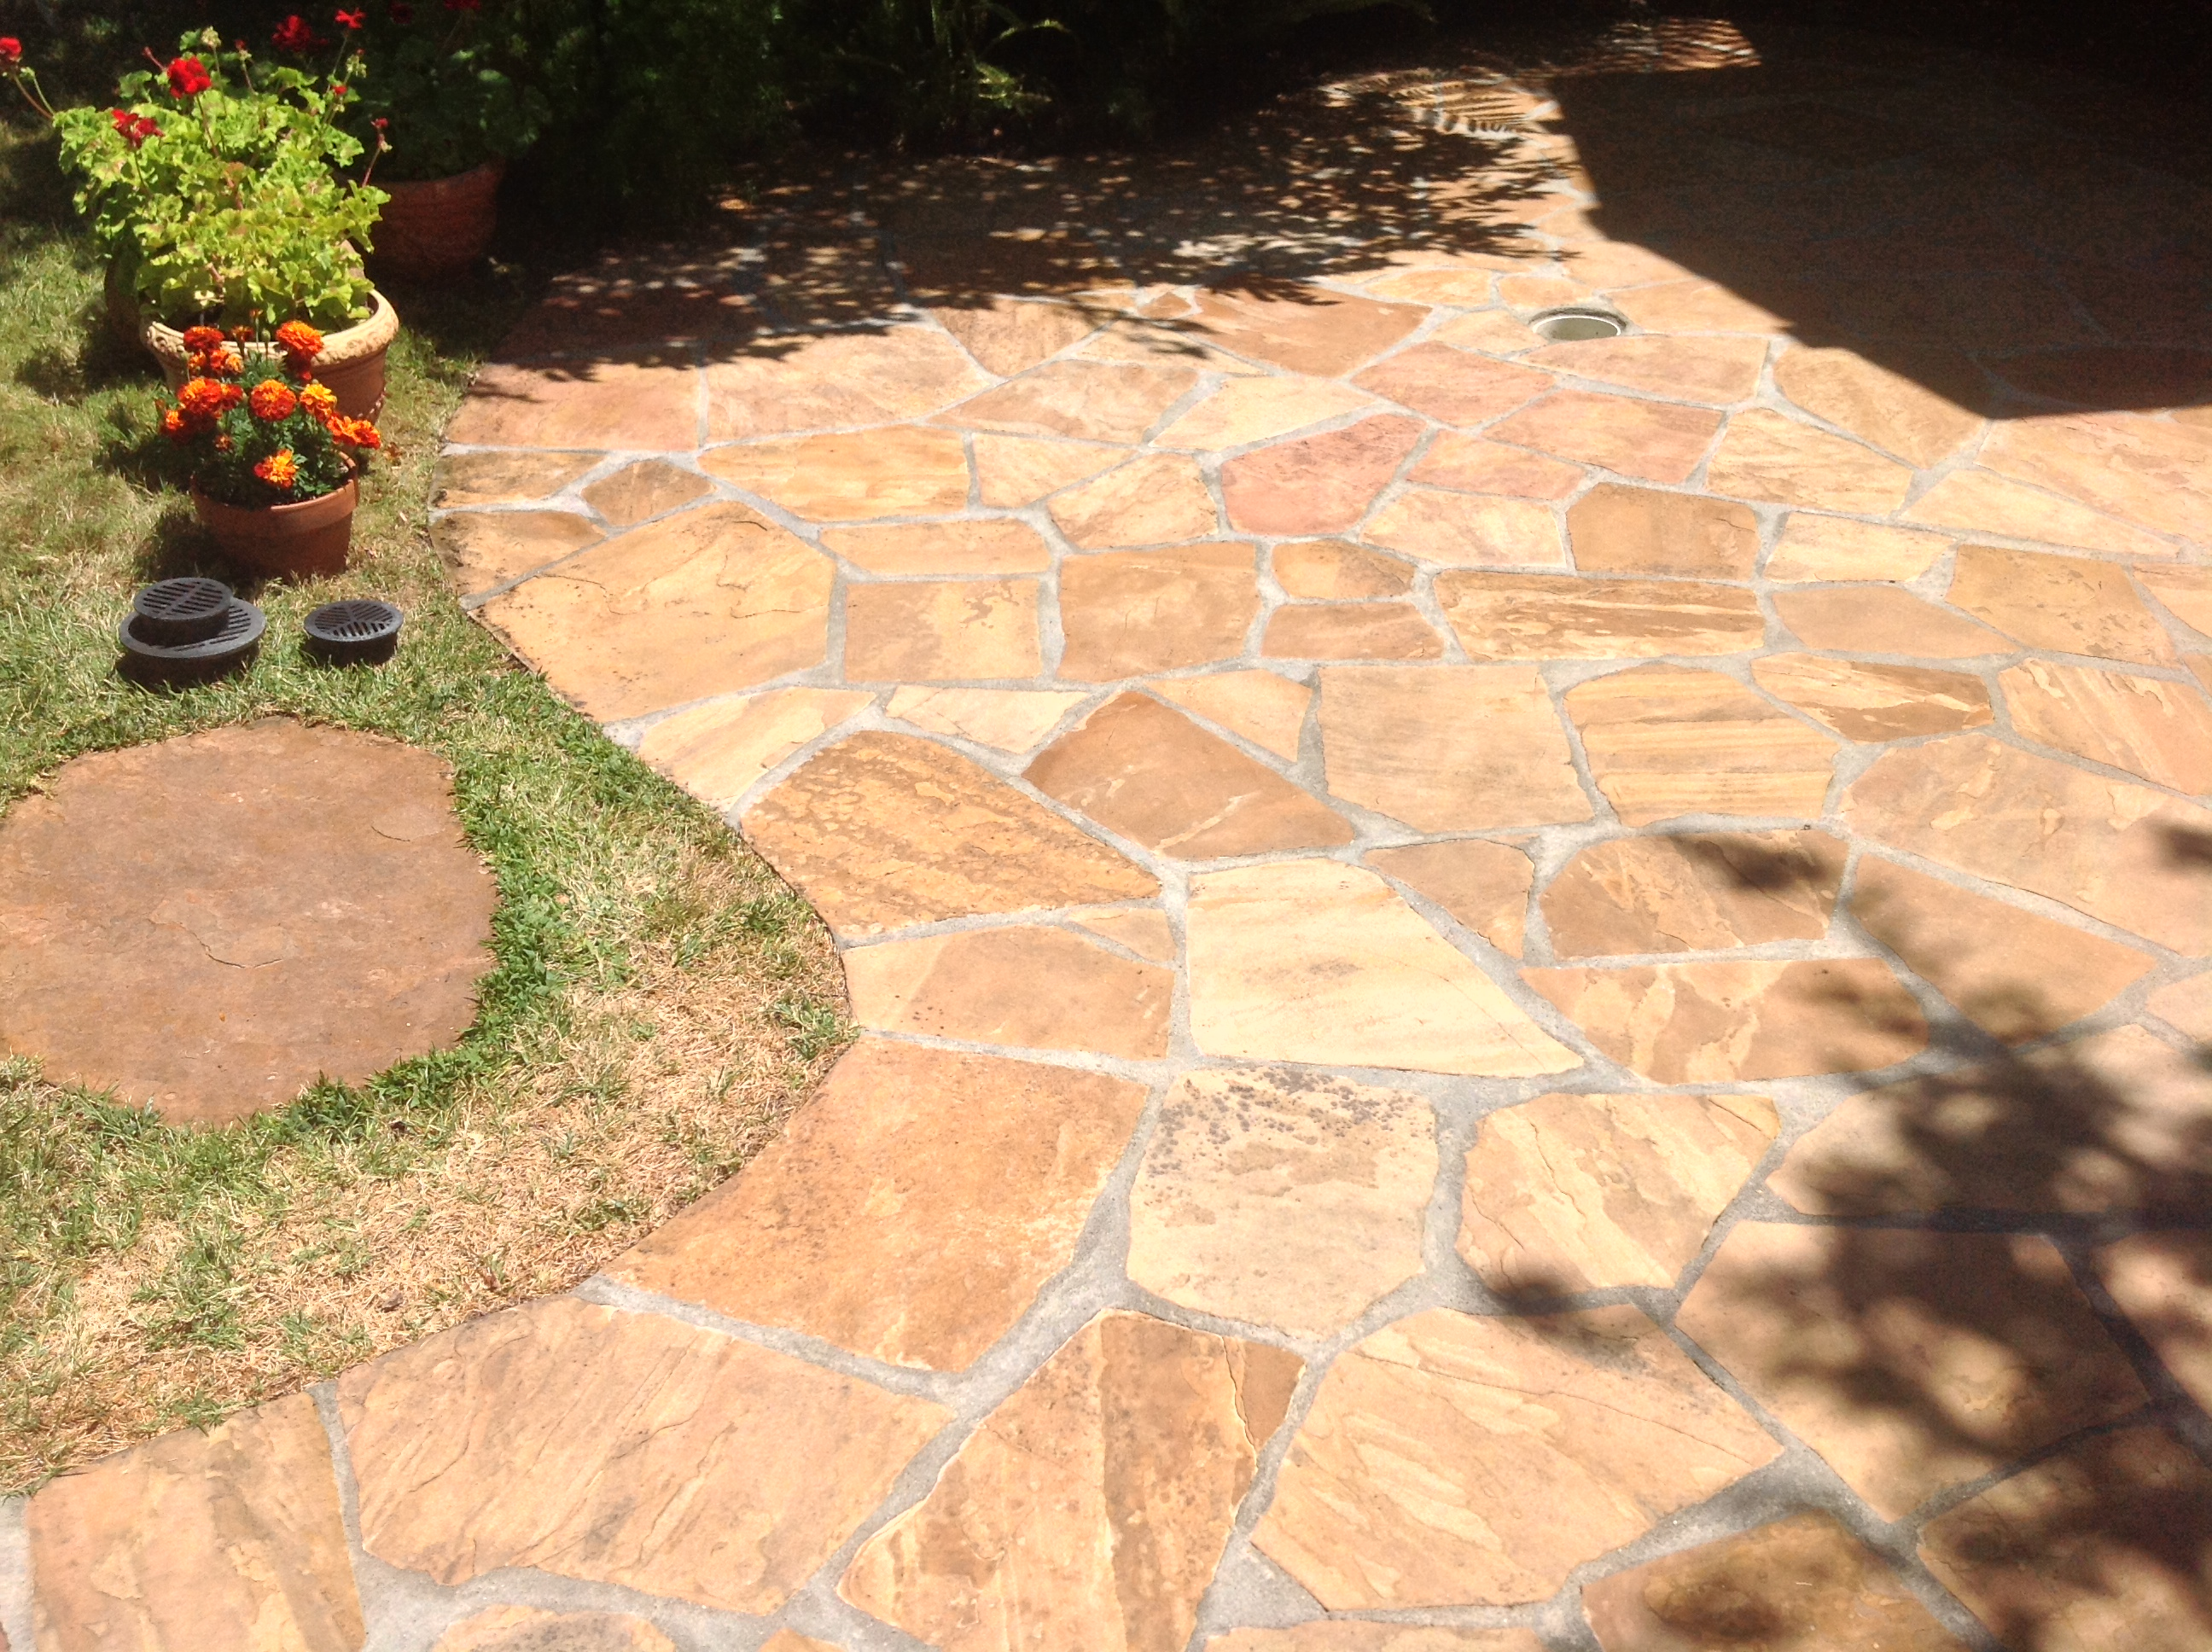 Flagstone Patio Restored Enhanced Natural Stone Patio ...